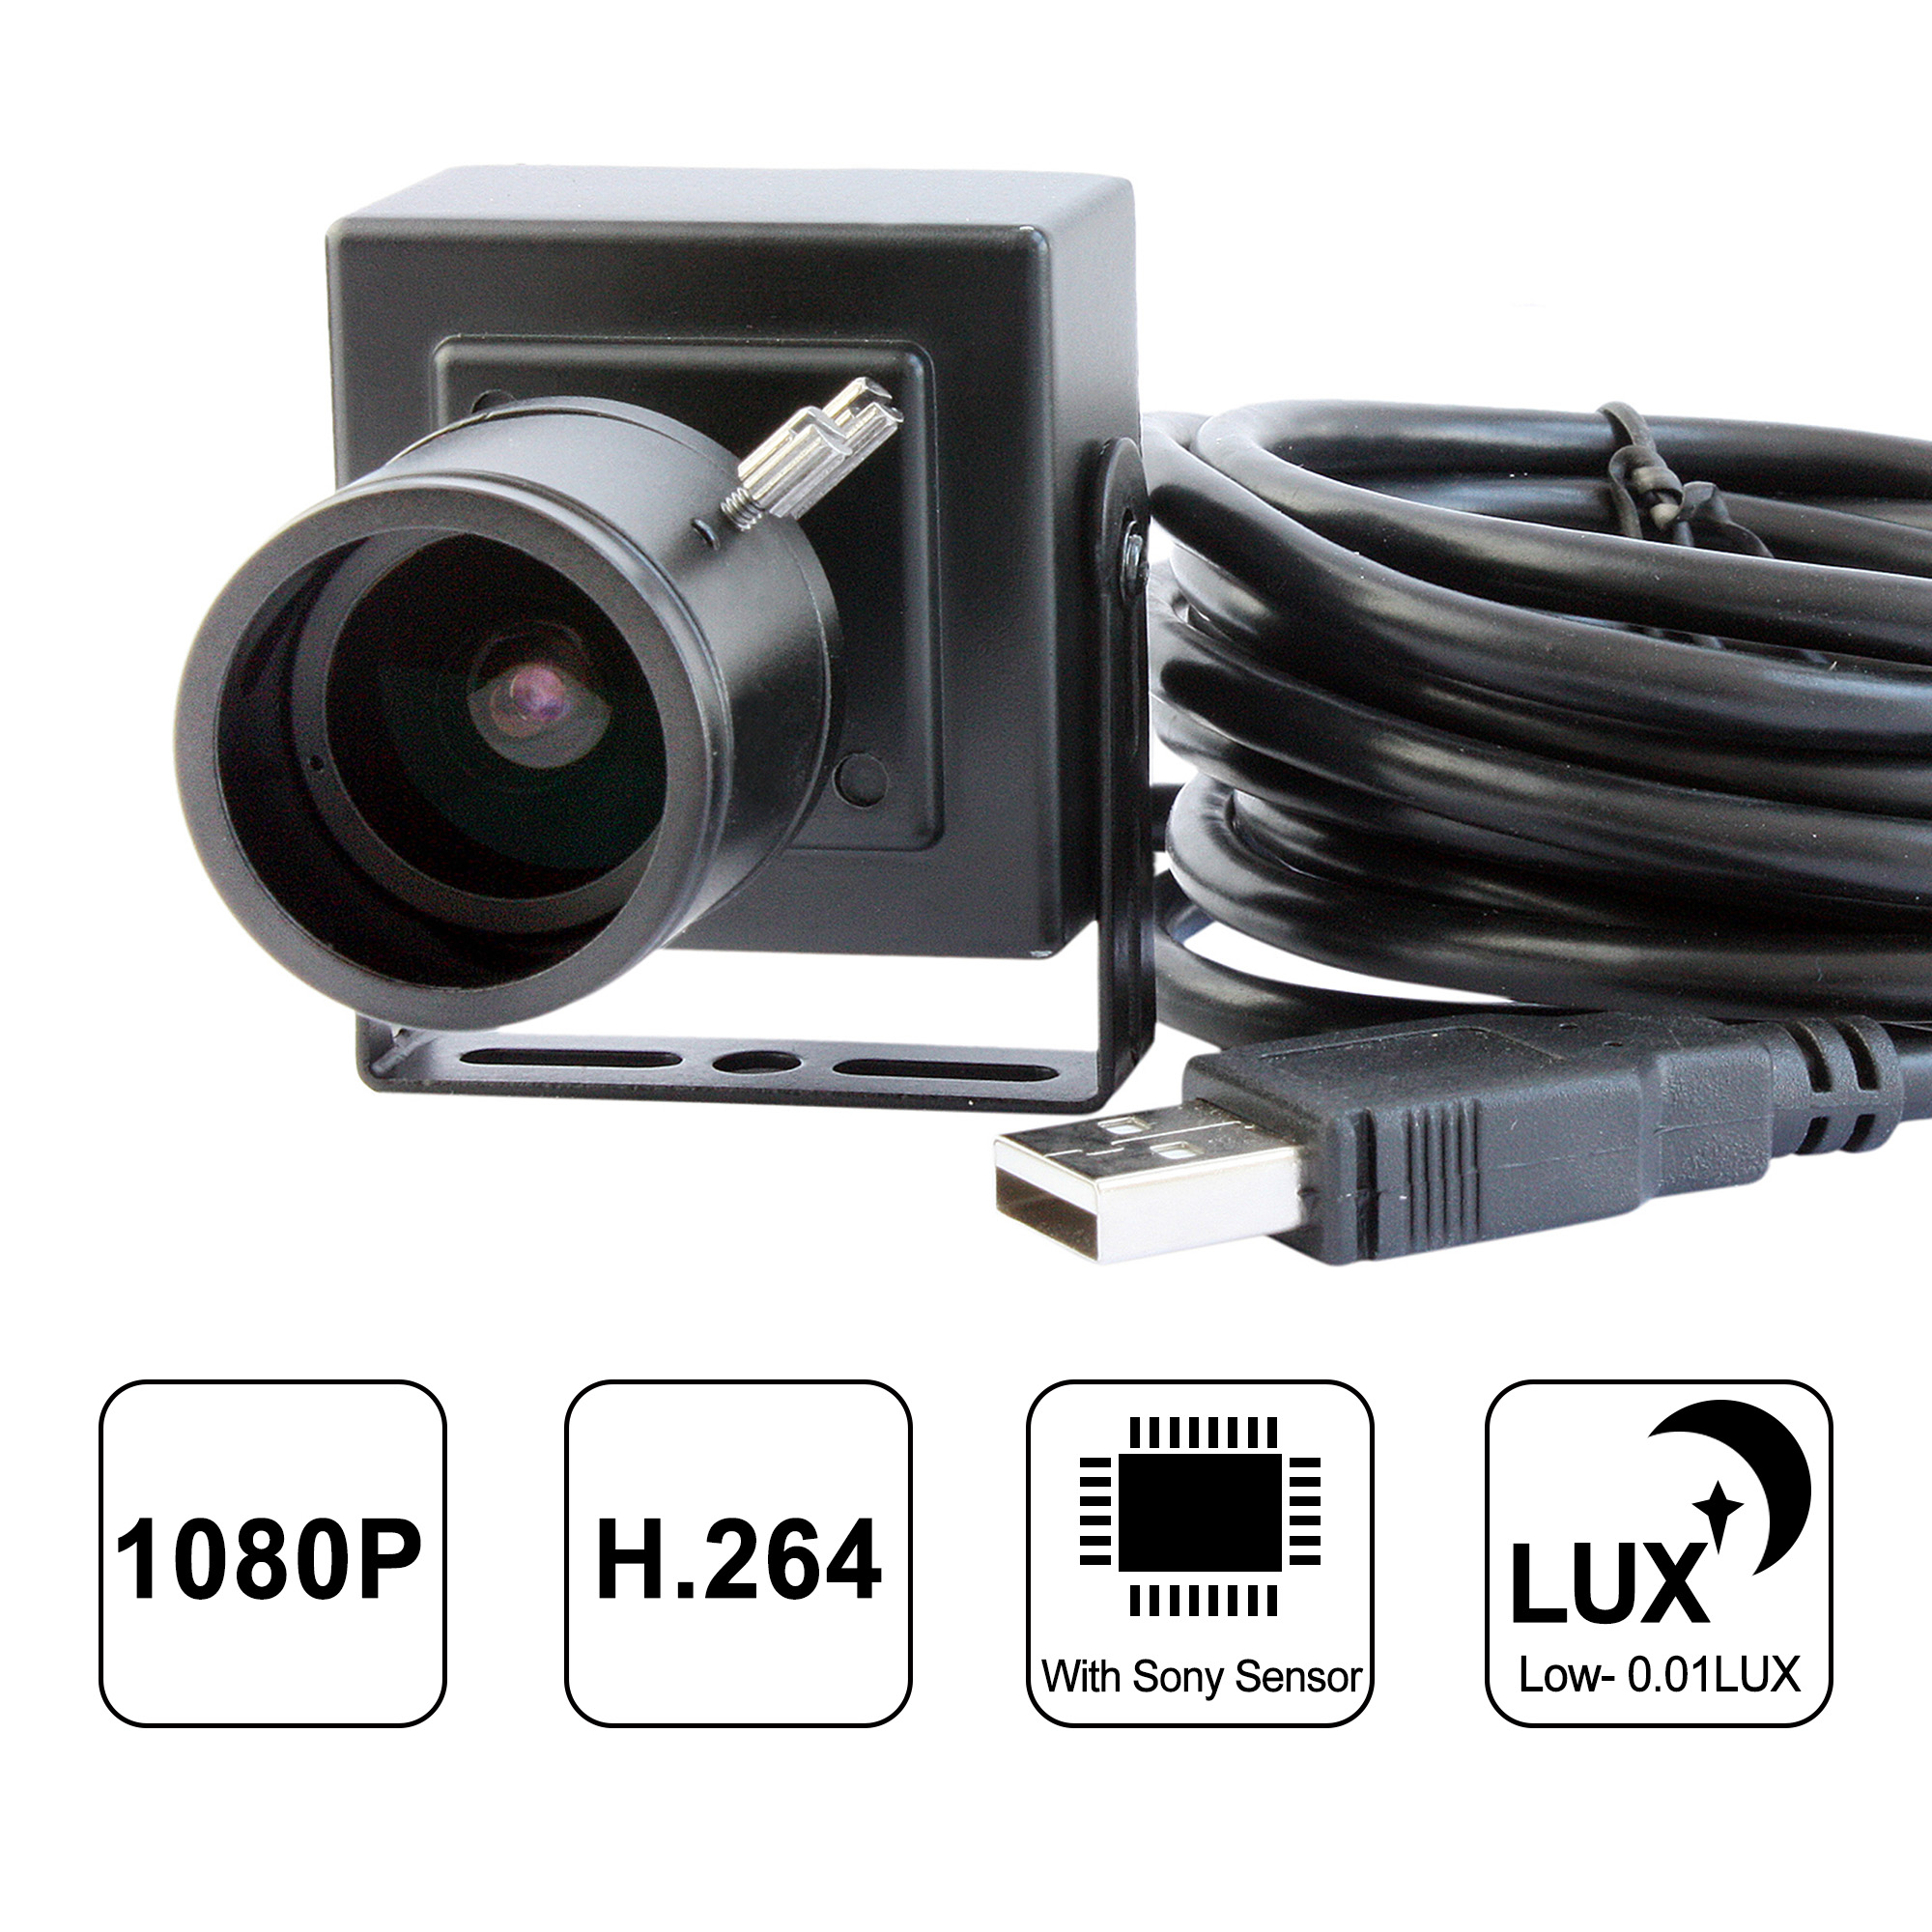 ELP H.264 1080P Low Illumination 0.01Lux Sony IMX322 OTG Inspection USB Camera Module With CCTV Varifocal Manual Focus 2.8-12mm Lens